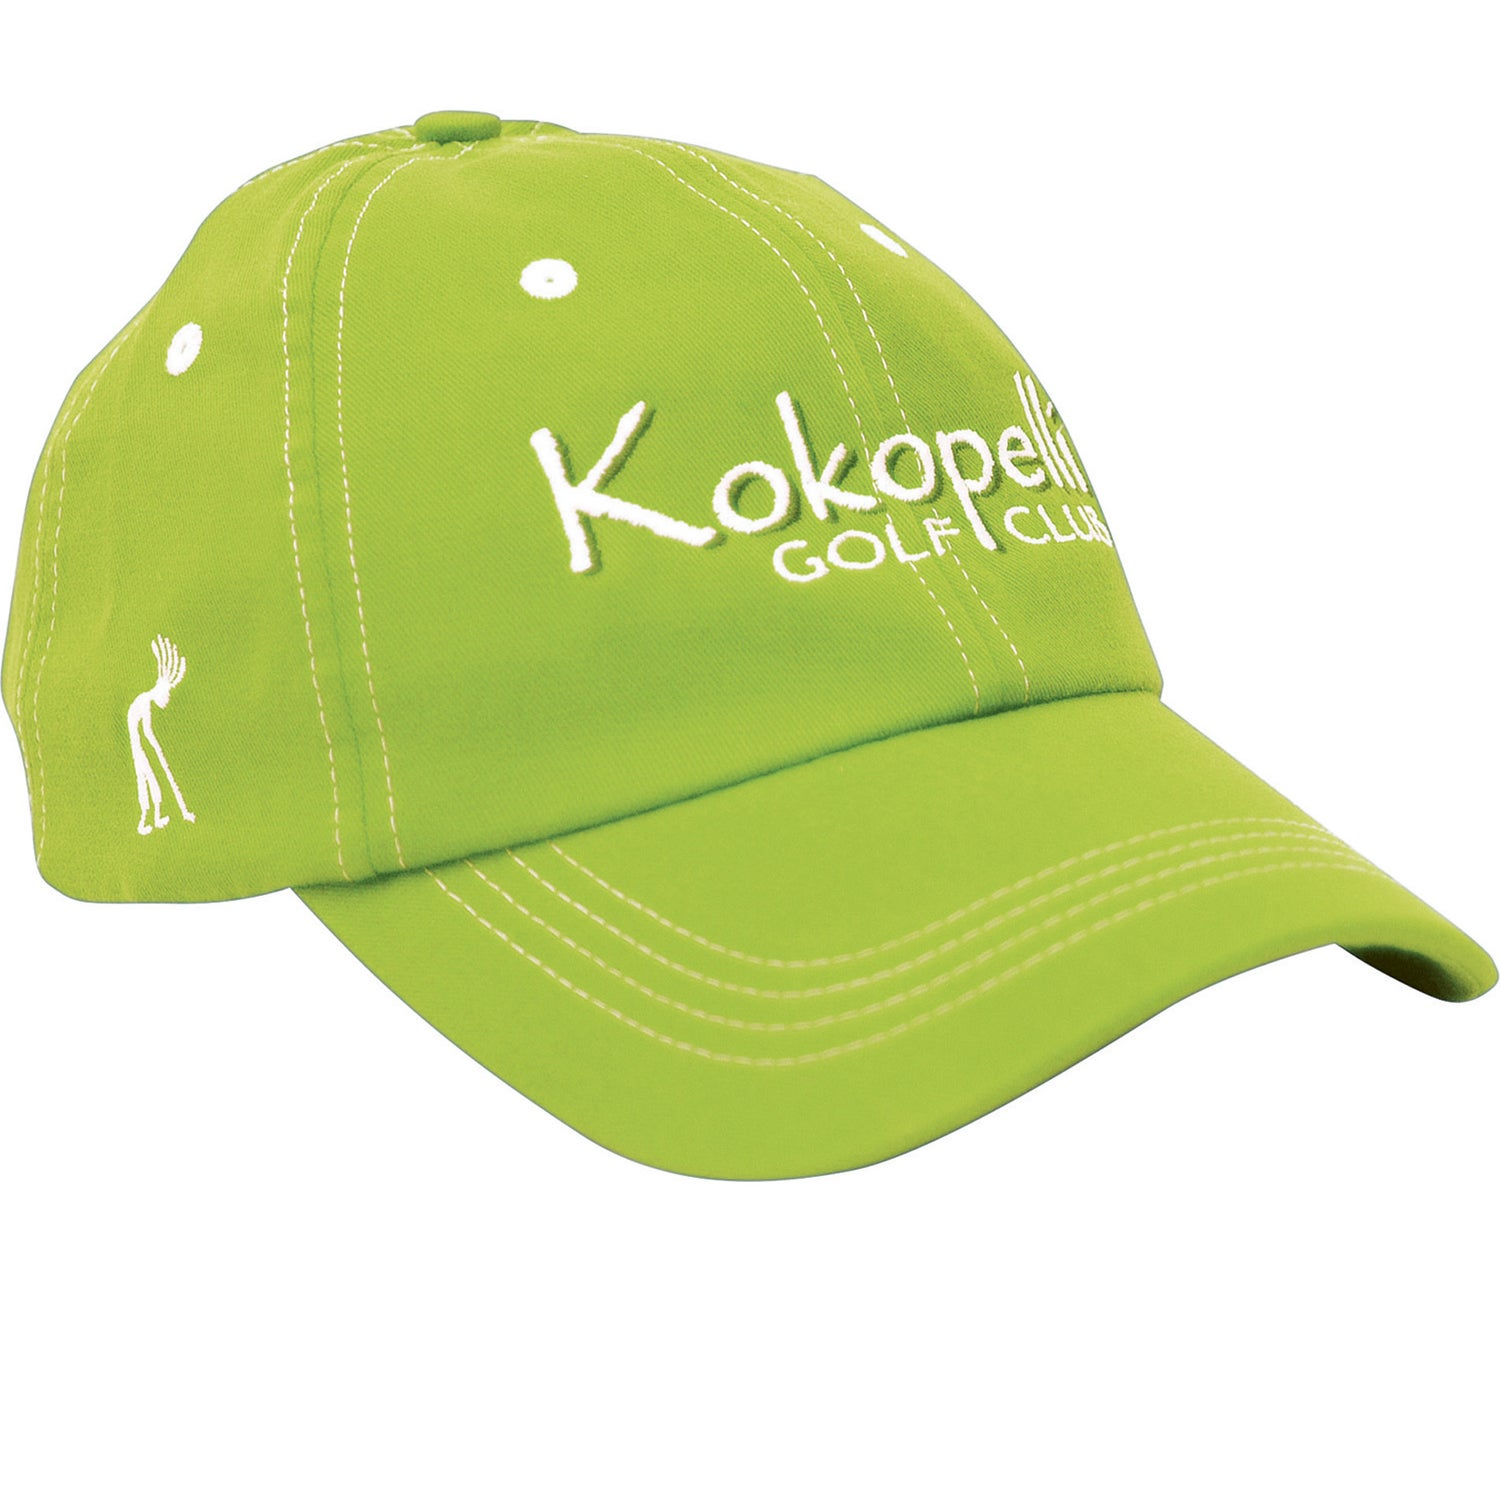 d9580e6c610 Promotional Ignite Vintage Twill Cap by TRIMARKs with Custom Logo for   14.44 Ea.